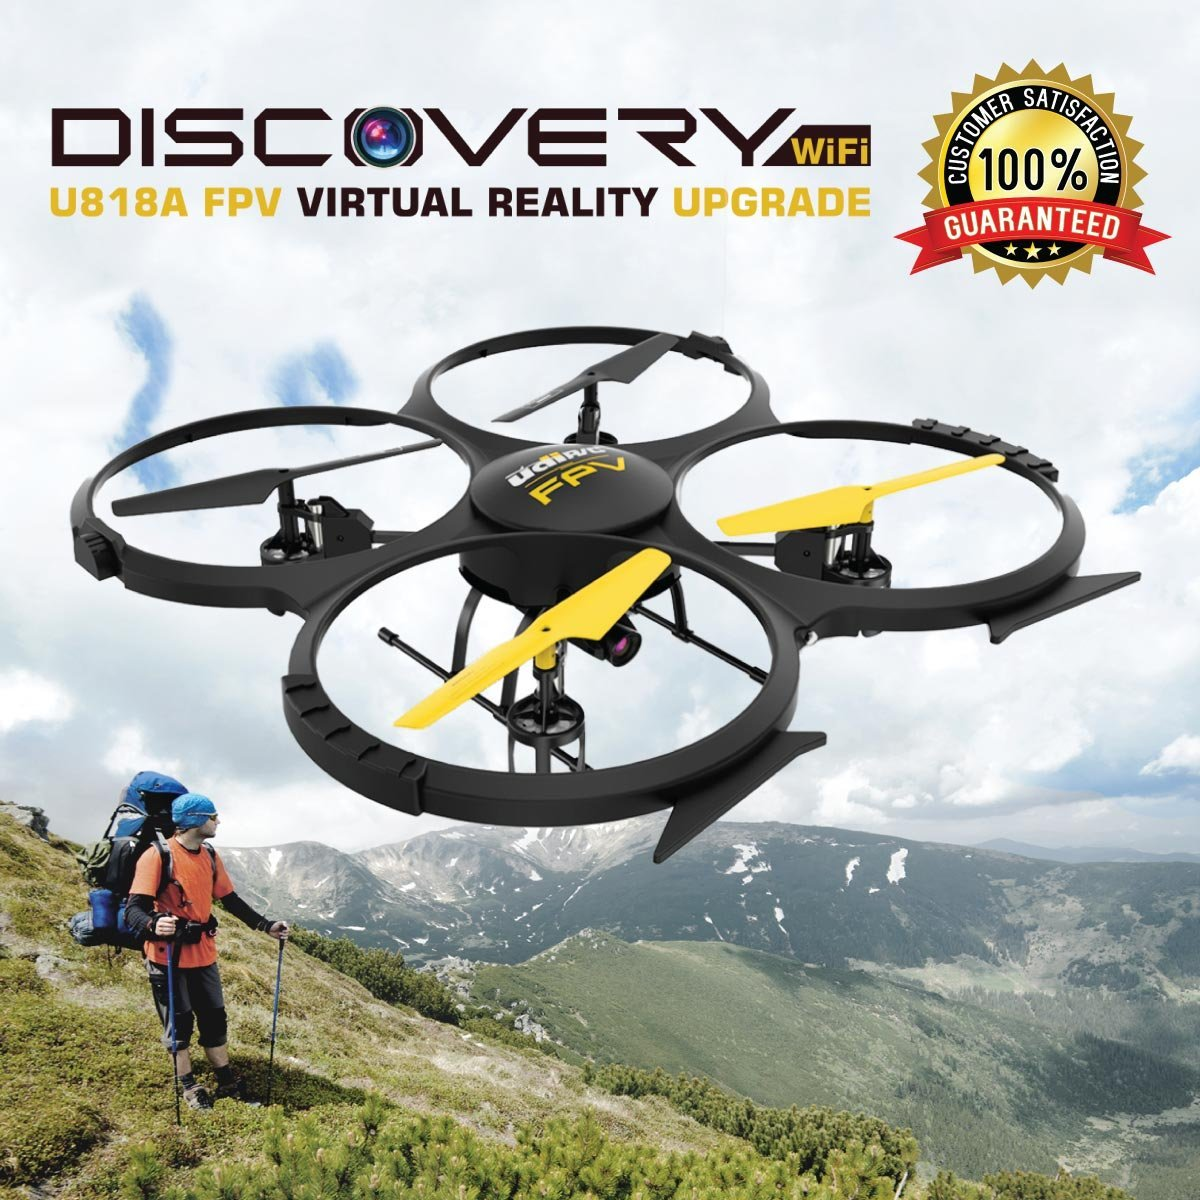 U818A Wifi FPV Drone with Altitude Hold, HD Camera Live Video,